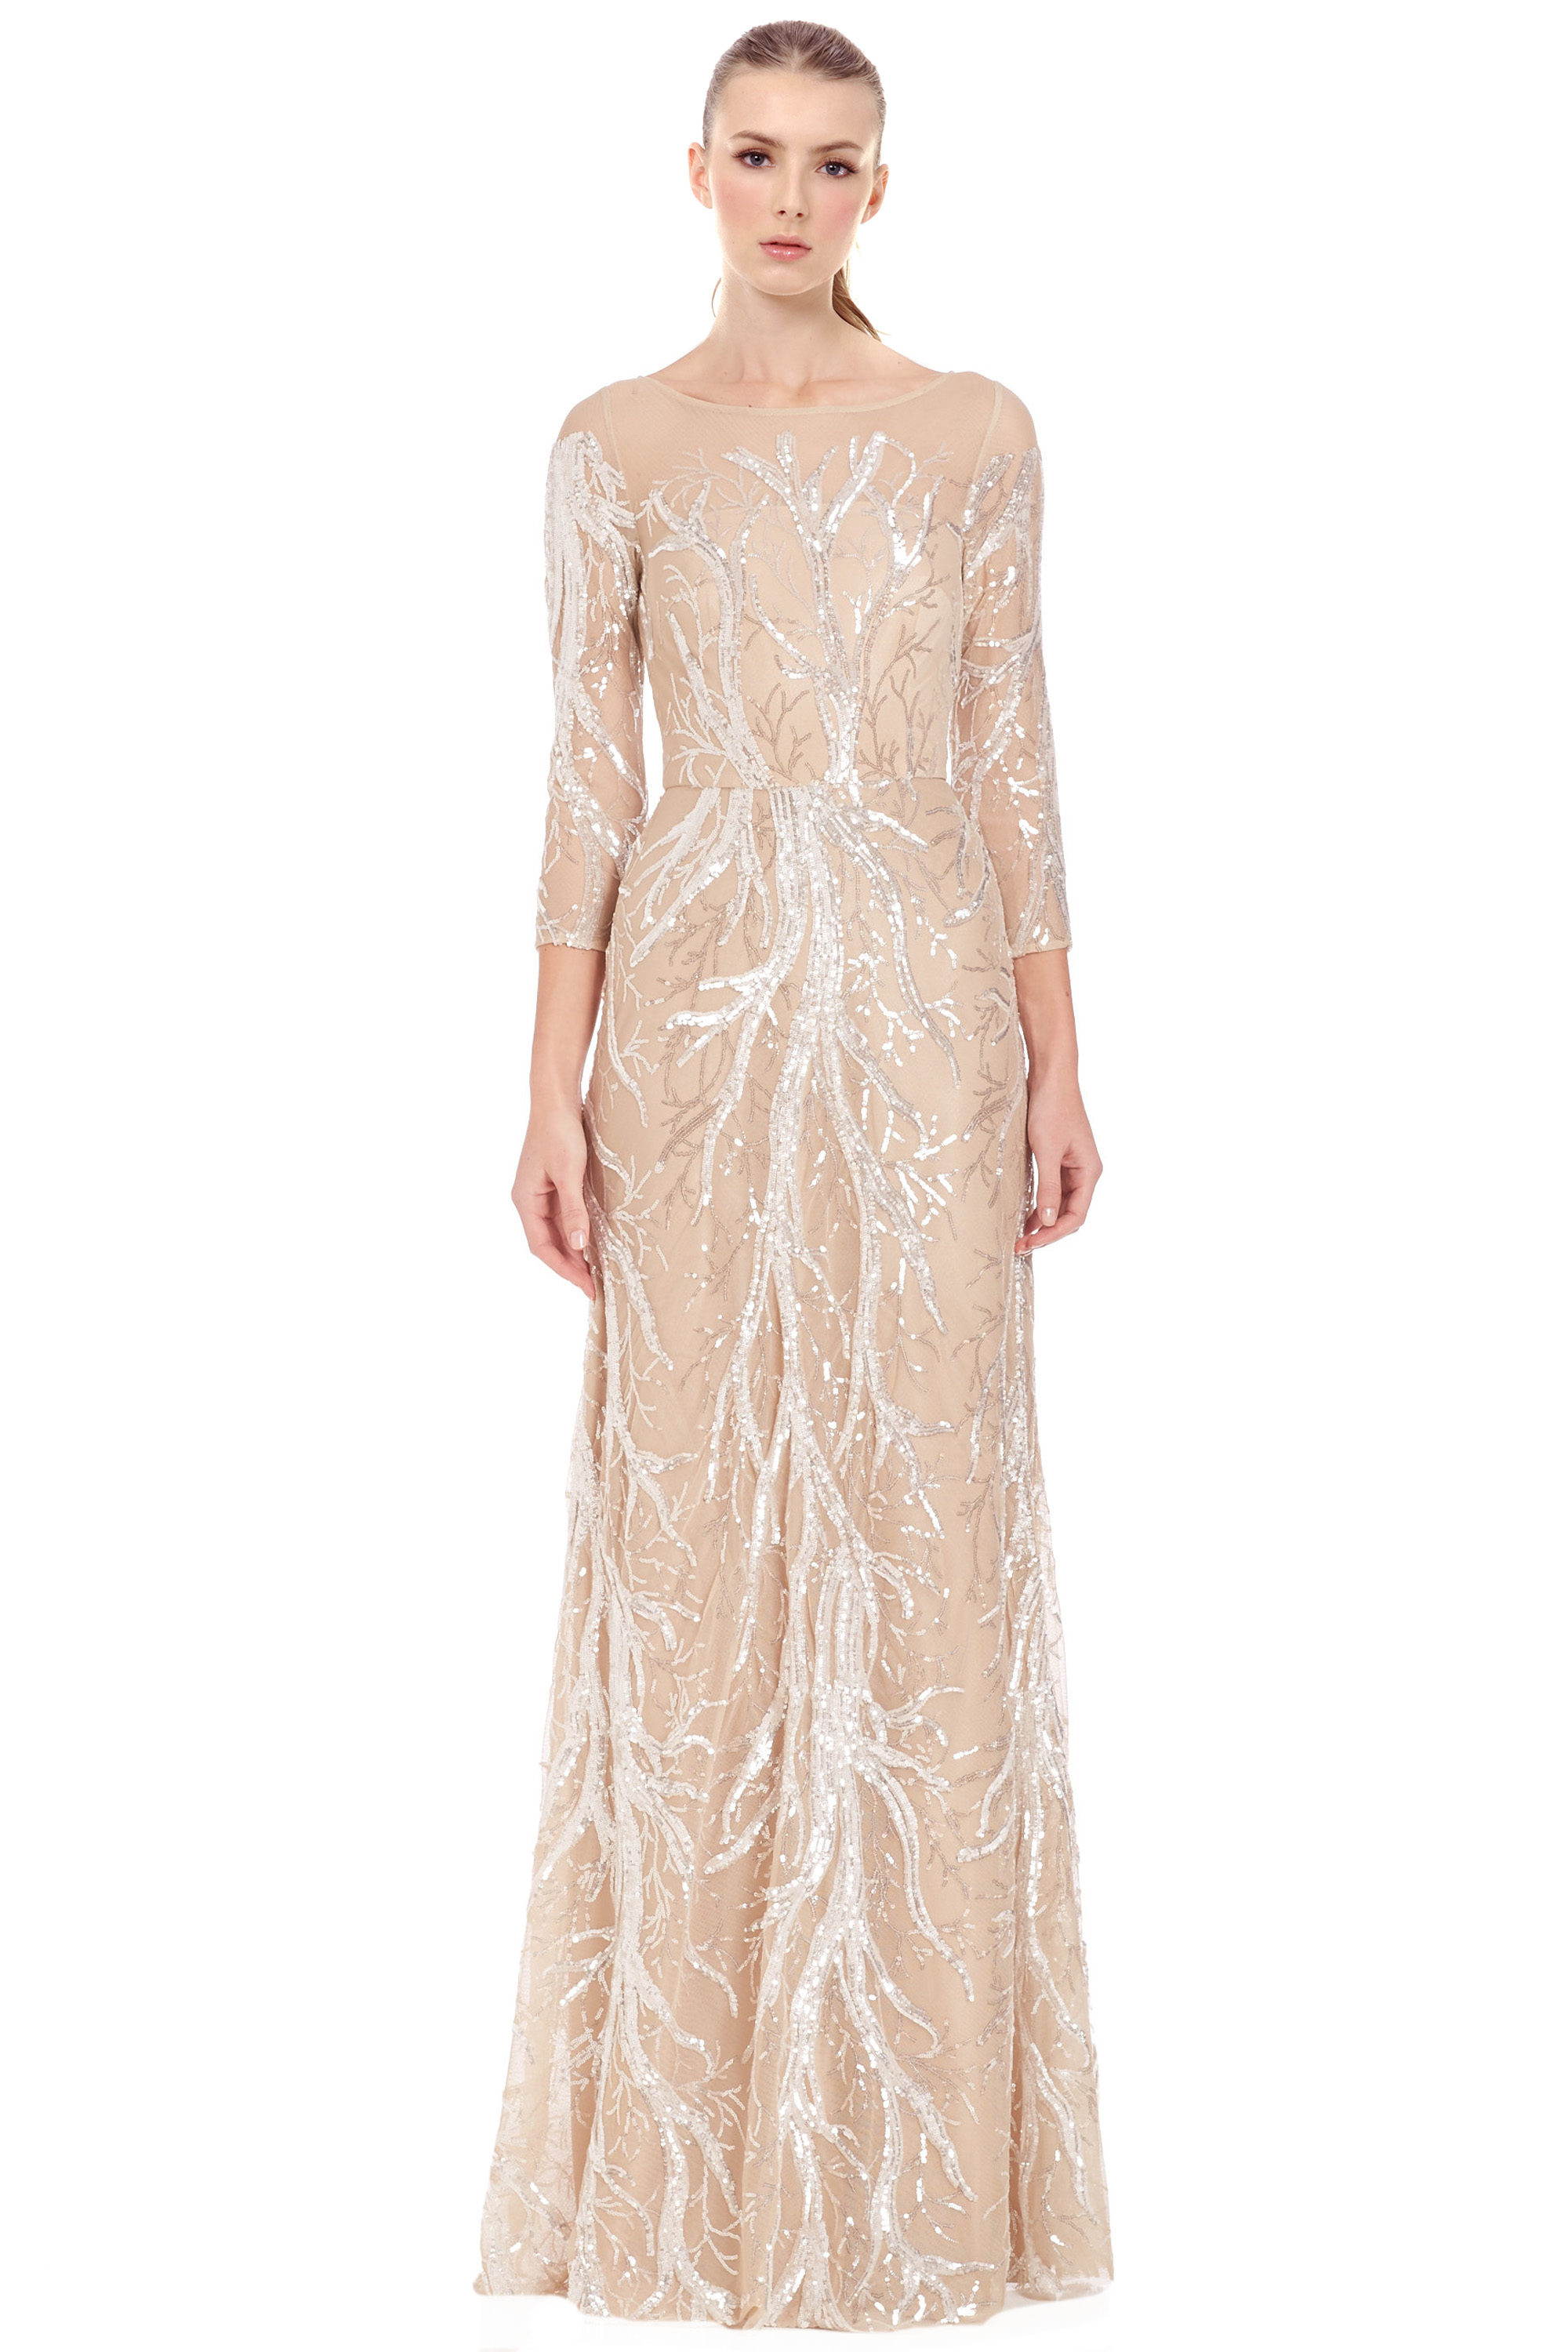 David Meister Nude Embroidered Sequin 3/4 Sleeve Evening Ball Gown ...